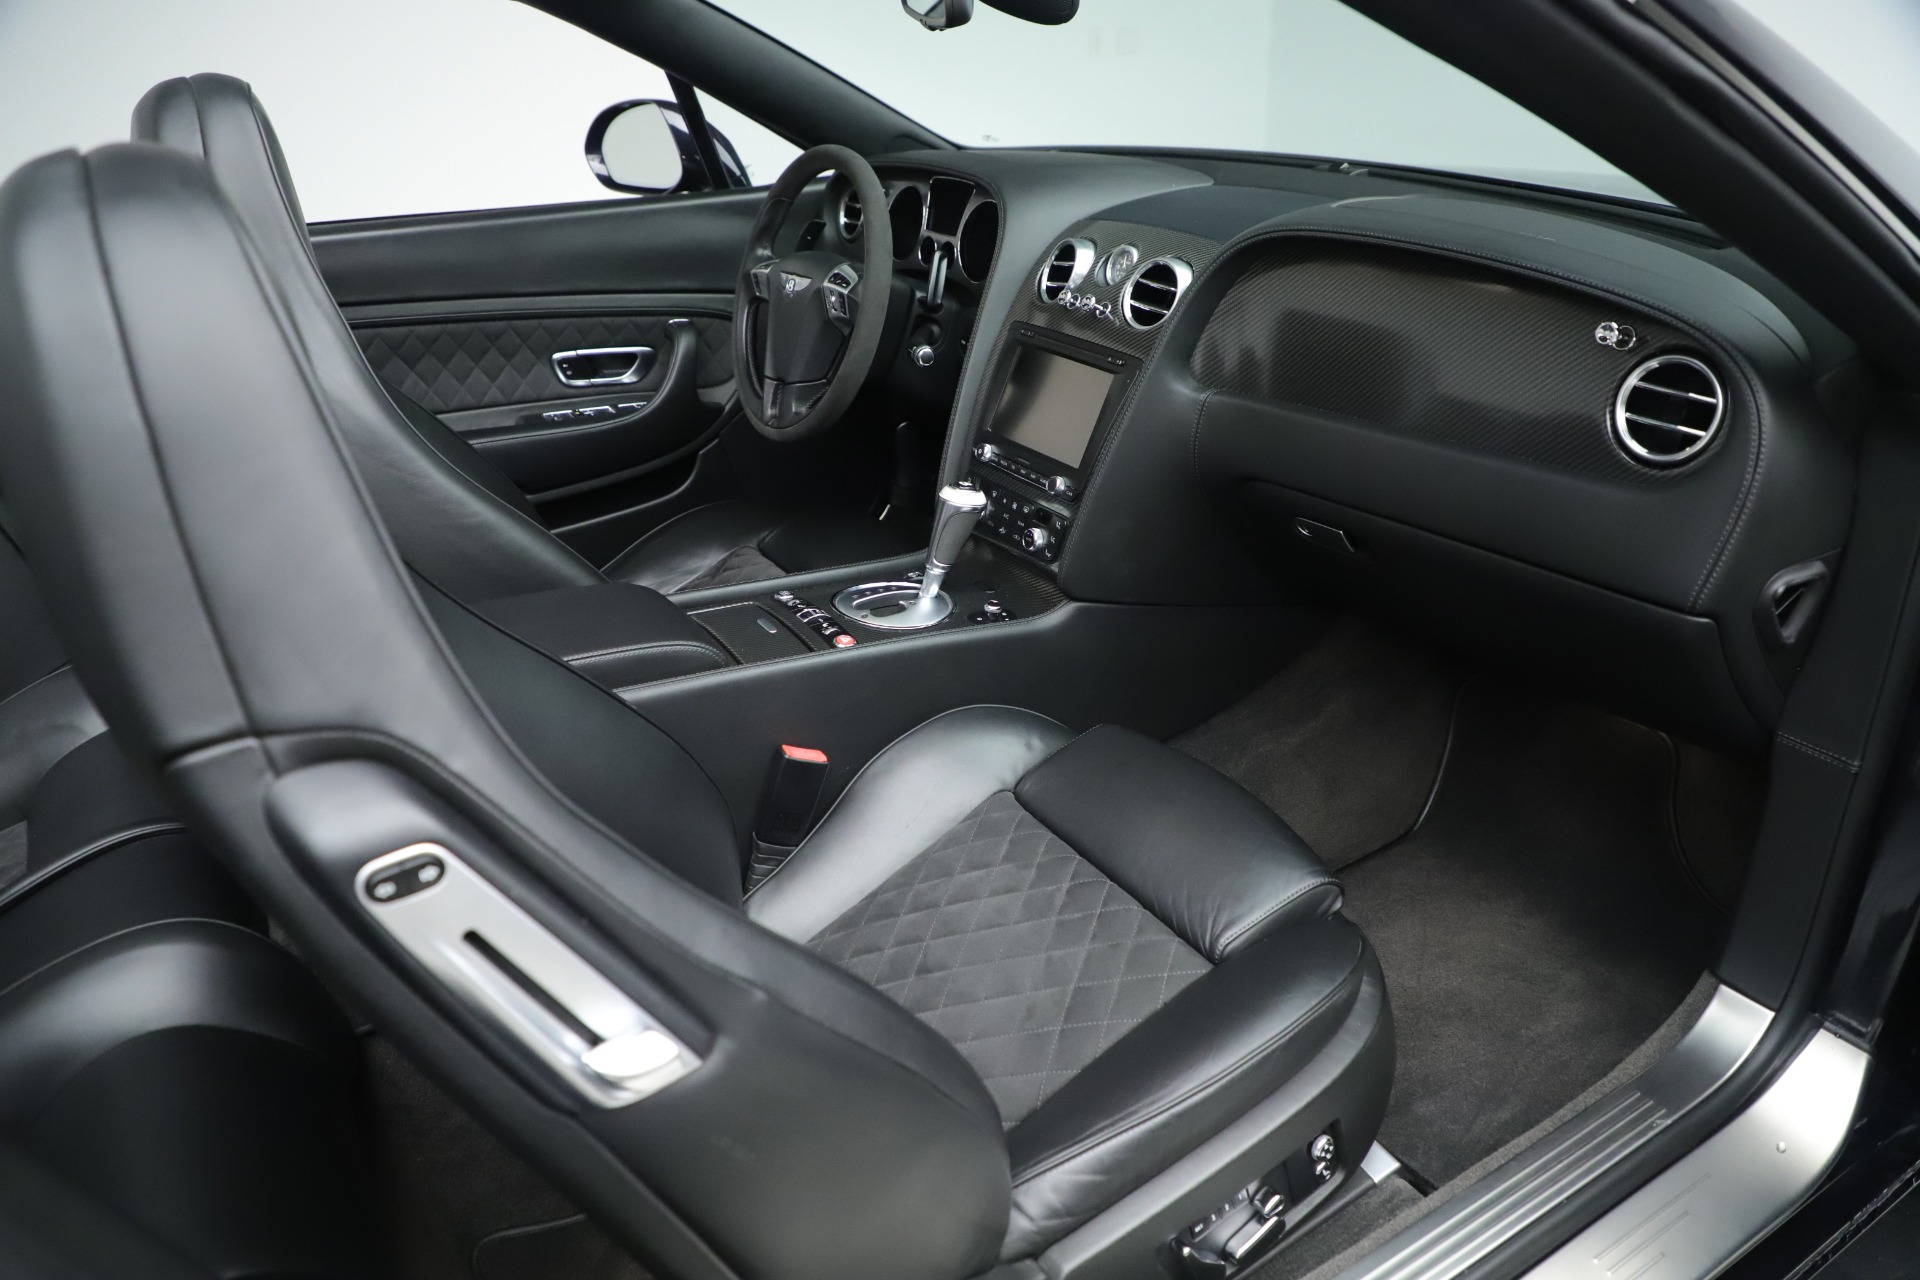 Used 2012 Bentley Continental GT Supersports For Sale In Westport, CT 3214_p28